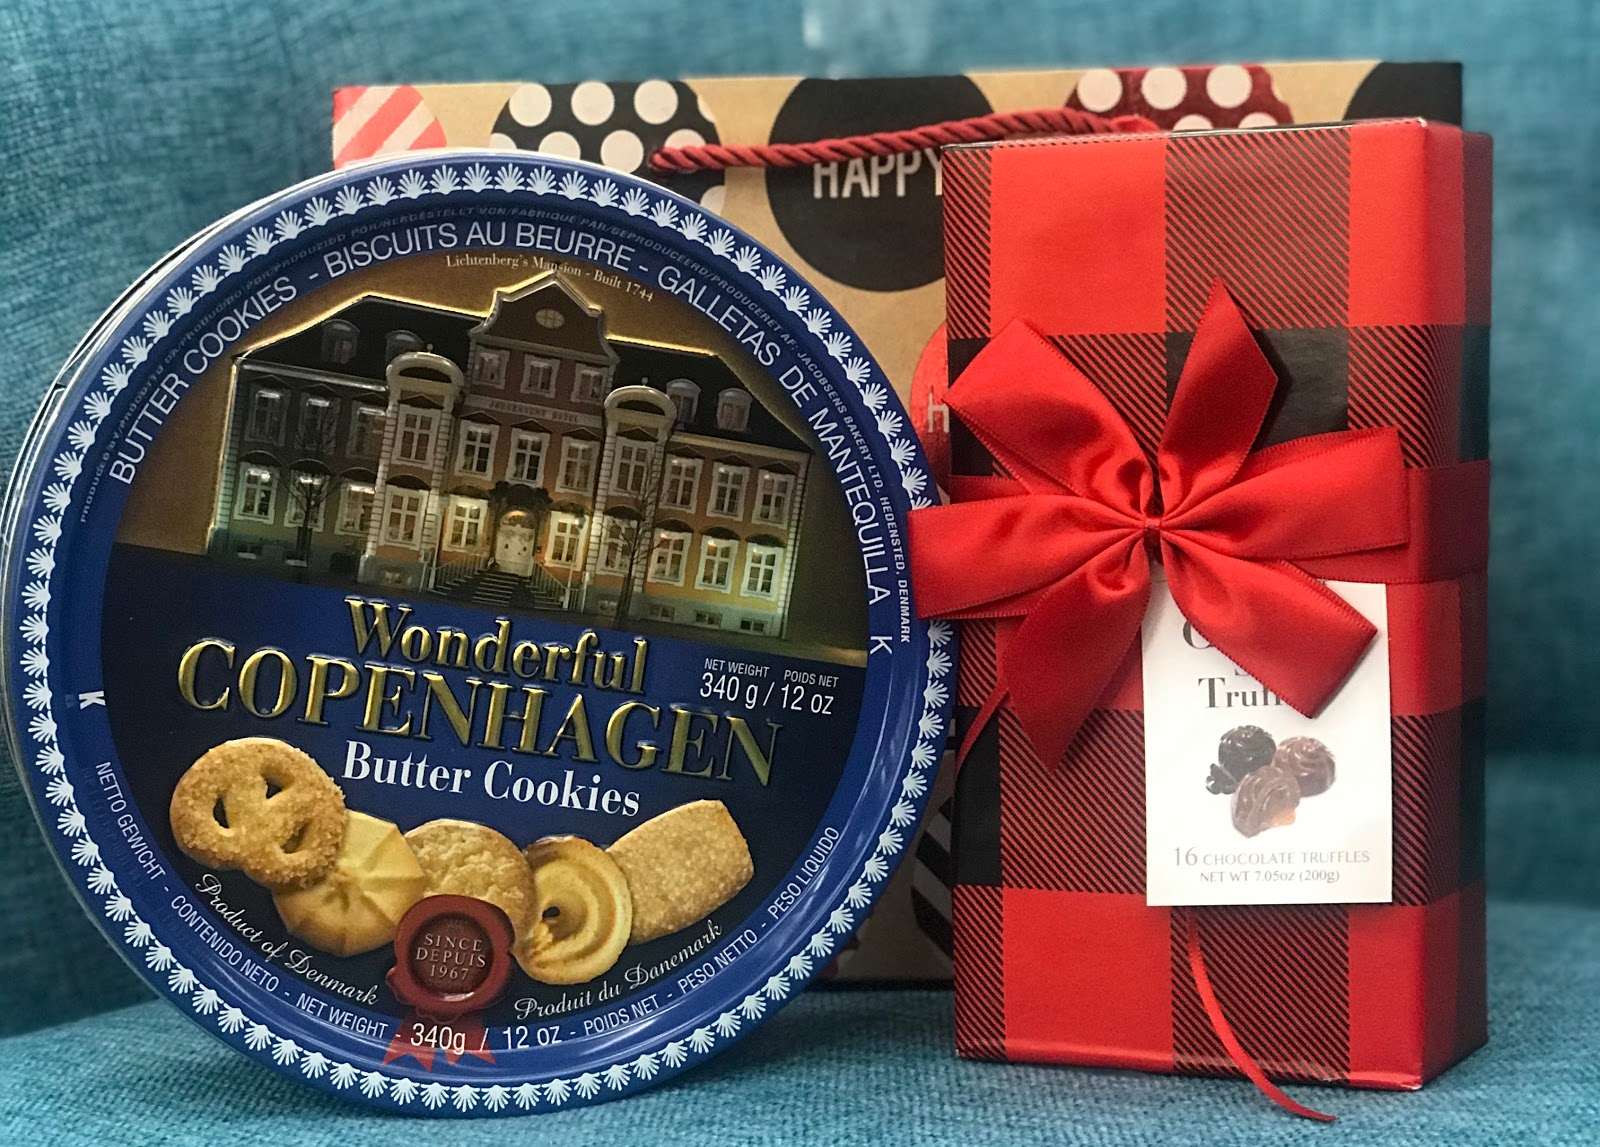 Gift giving ideas: a can of butter cookies, and truffles: Morning Babbles